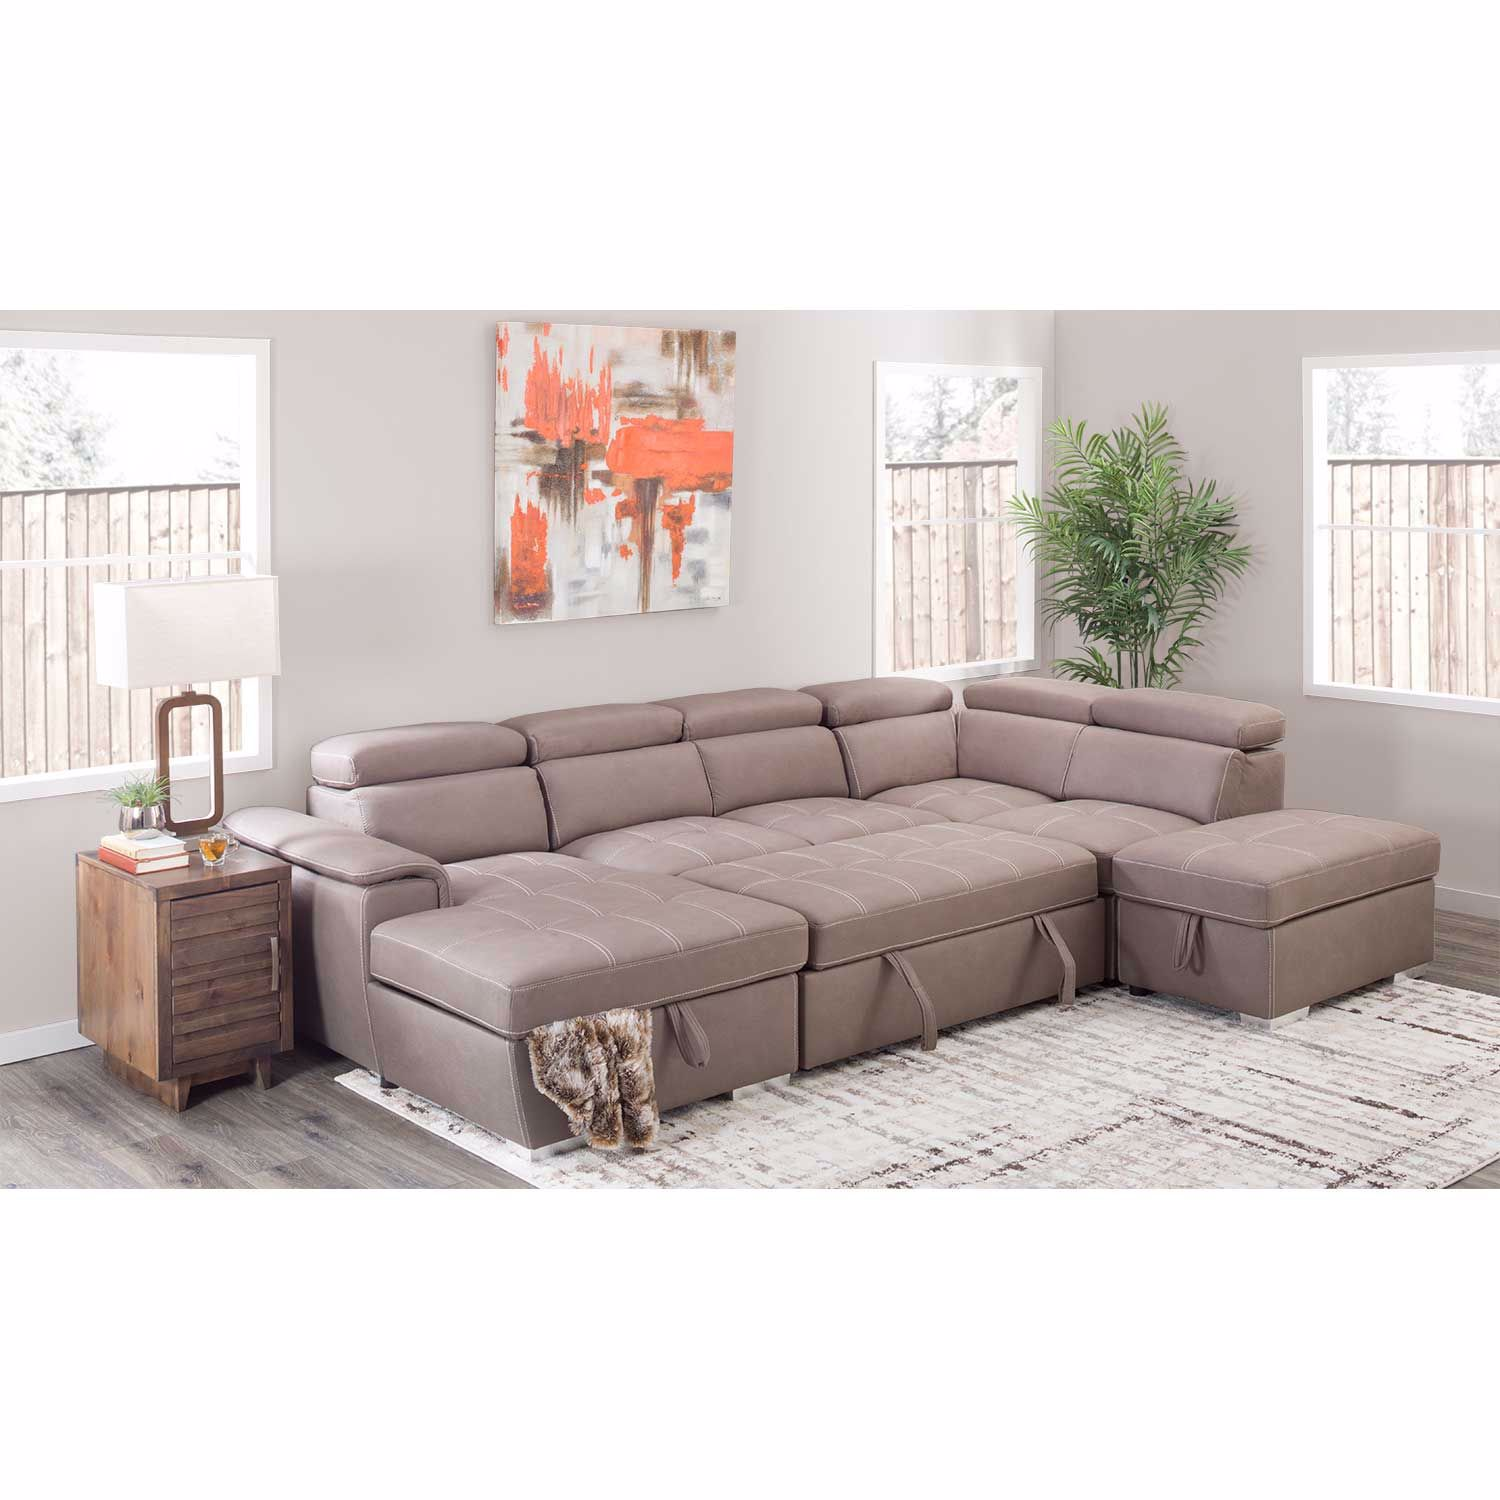 Picture of Levite 4 Piece Sectional with Storage